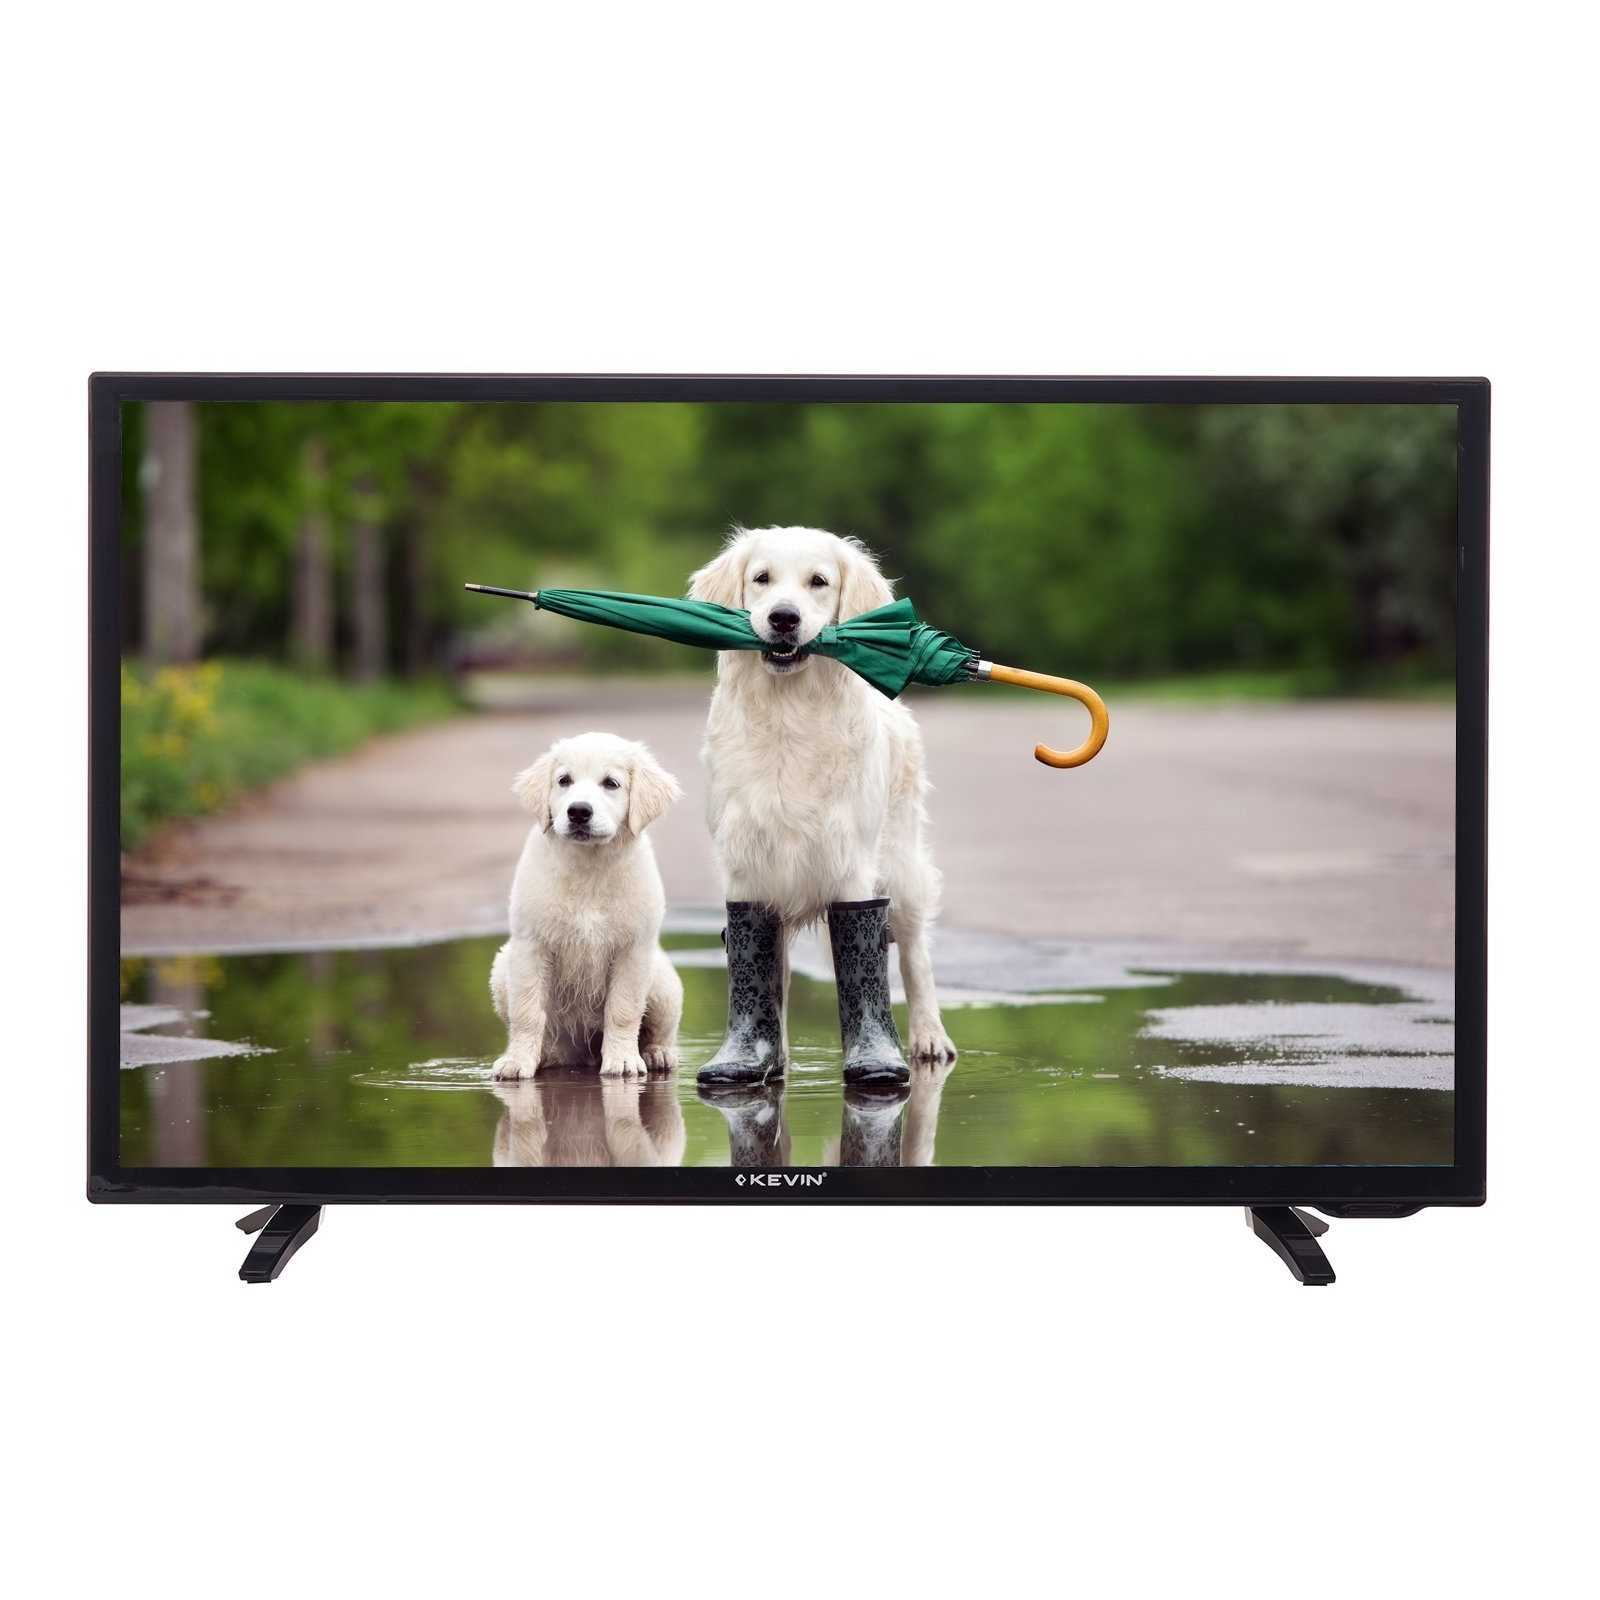 Kevin KN10 32 Inch HD Ready LED Television